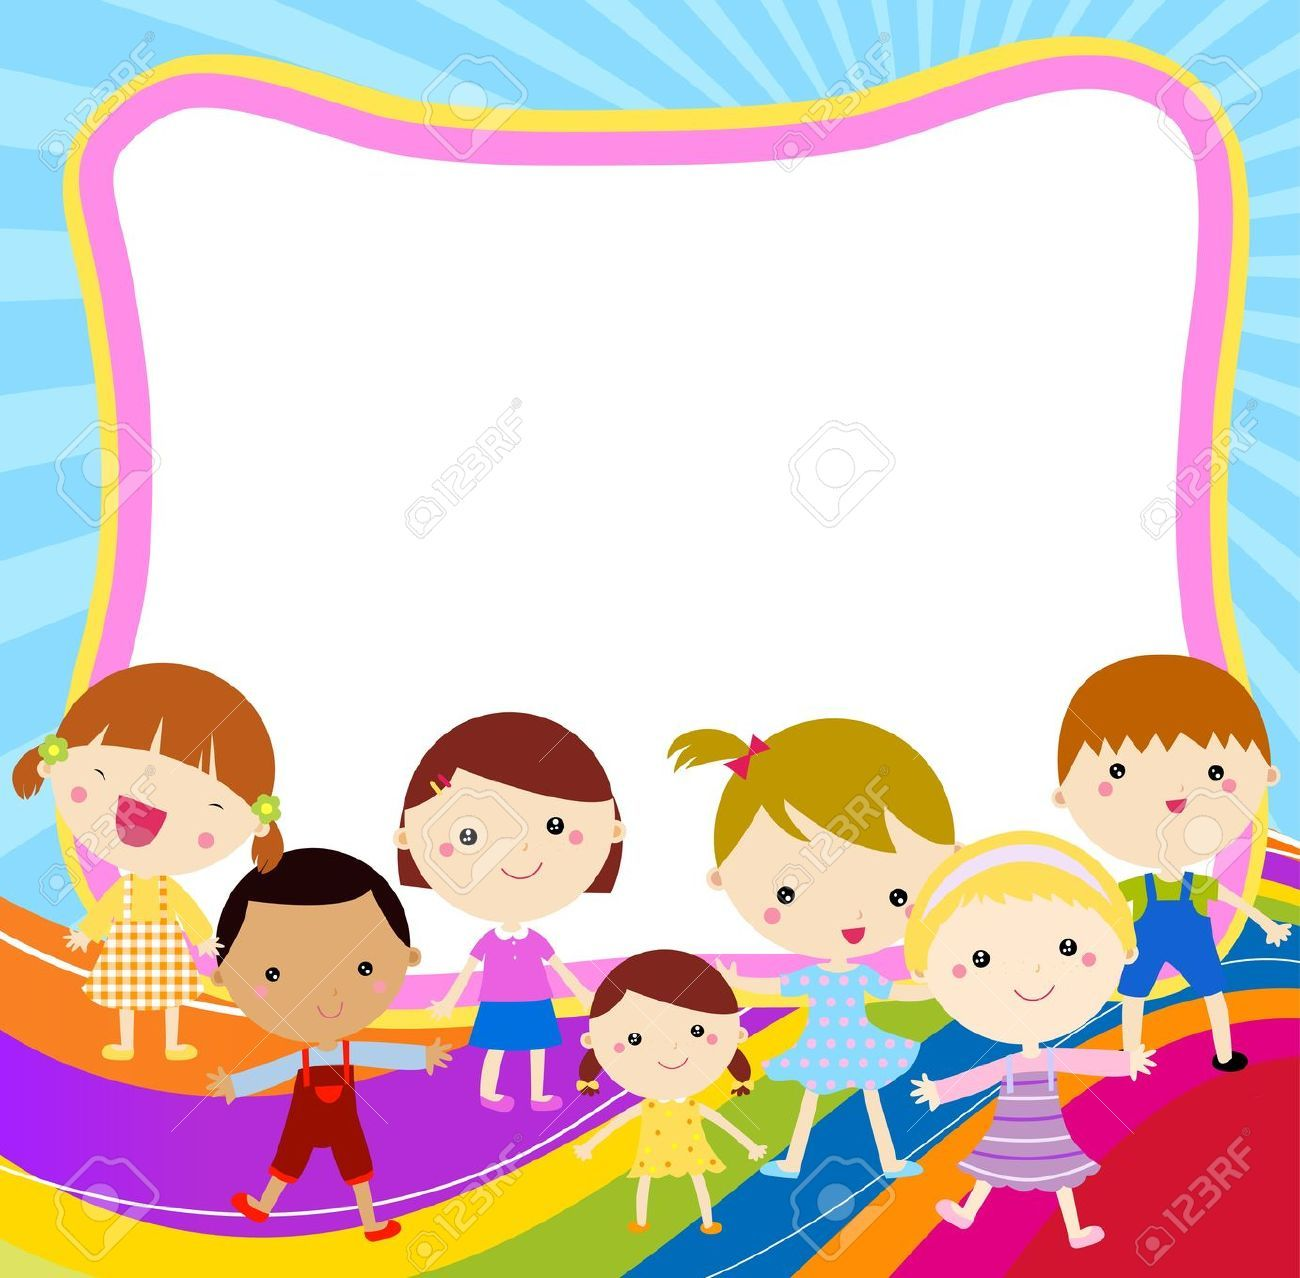 Frame clipart friendship Borders and frames, School